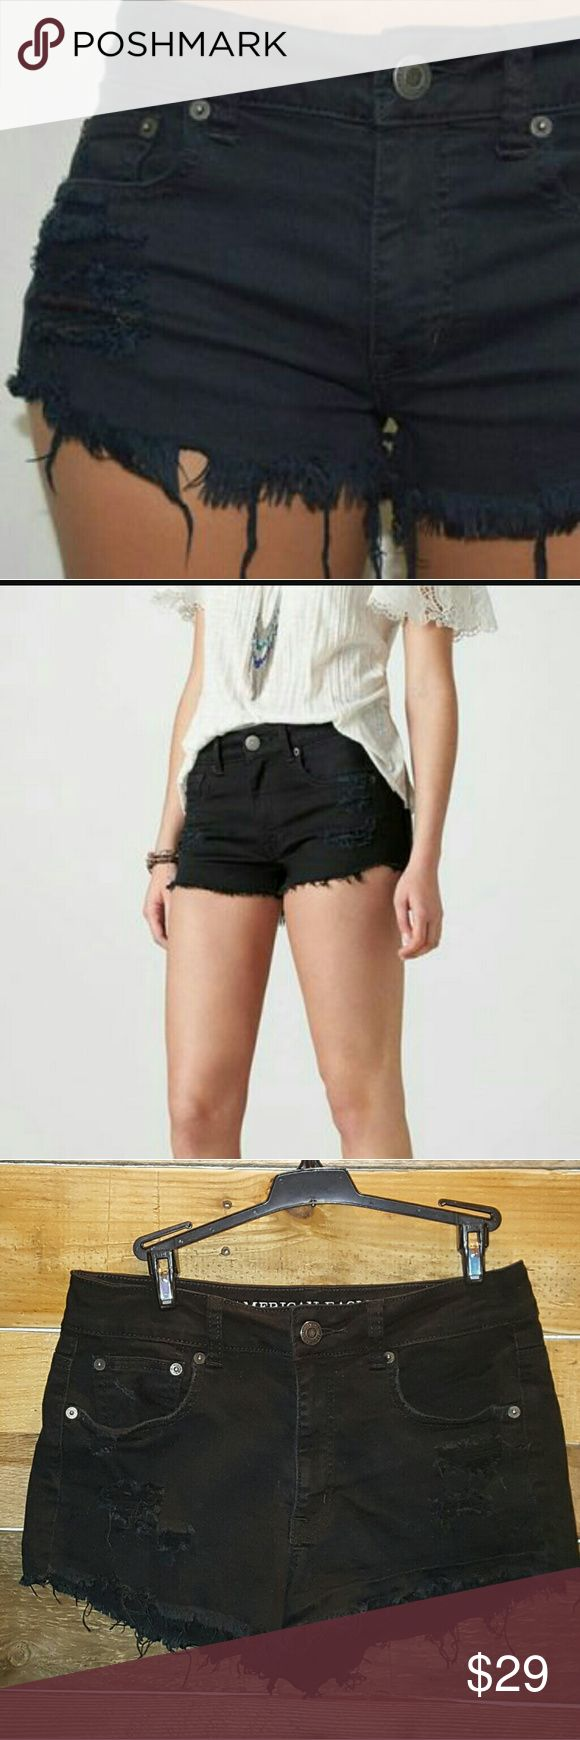 JUST INAEO HI-RISE CUTOFF JEAN SHORTS AMERICAN EAGLE OUTFITTERS HI-RISE FESTIVAL  DISTRESSED CUT OFF JEAN SHORTS COLOR BLACK SIZE 6 98% COTTON 2% SPANDEX BACK &  FRONT POCKETS GREAT PIECE FOR SPRING OR SUMMER! *NO TRADES NO RETURNS* American Eagle Outfitters Shorts Jean Shorts